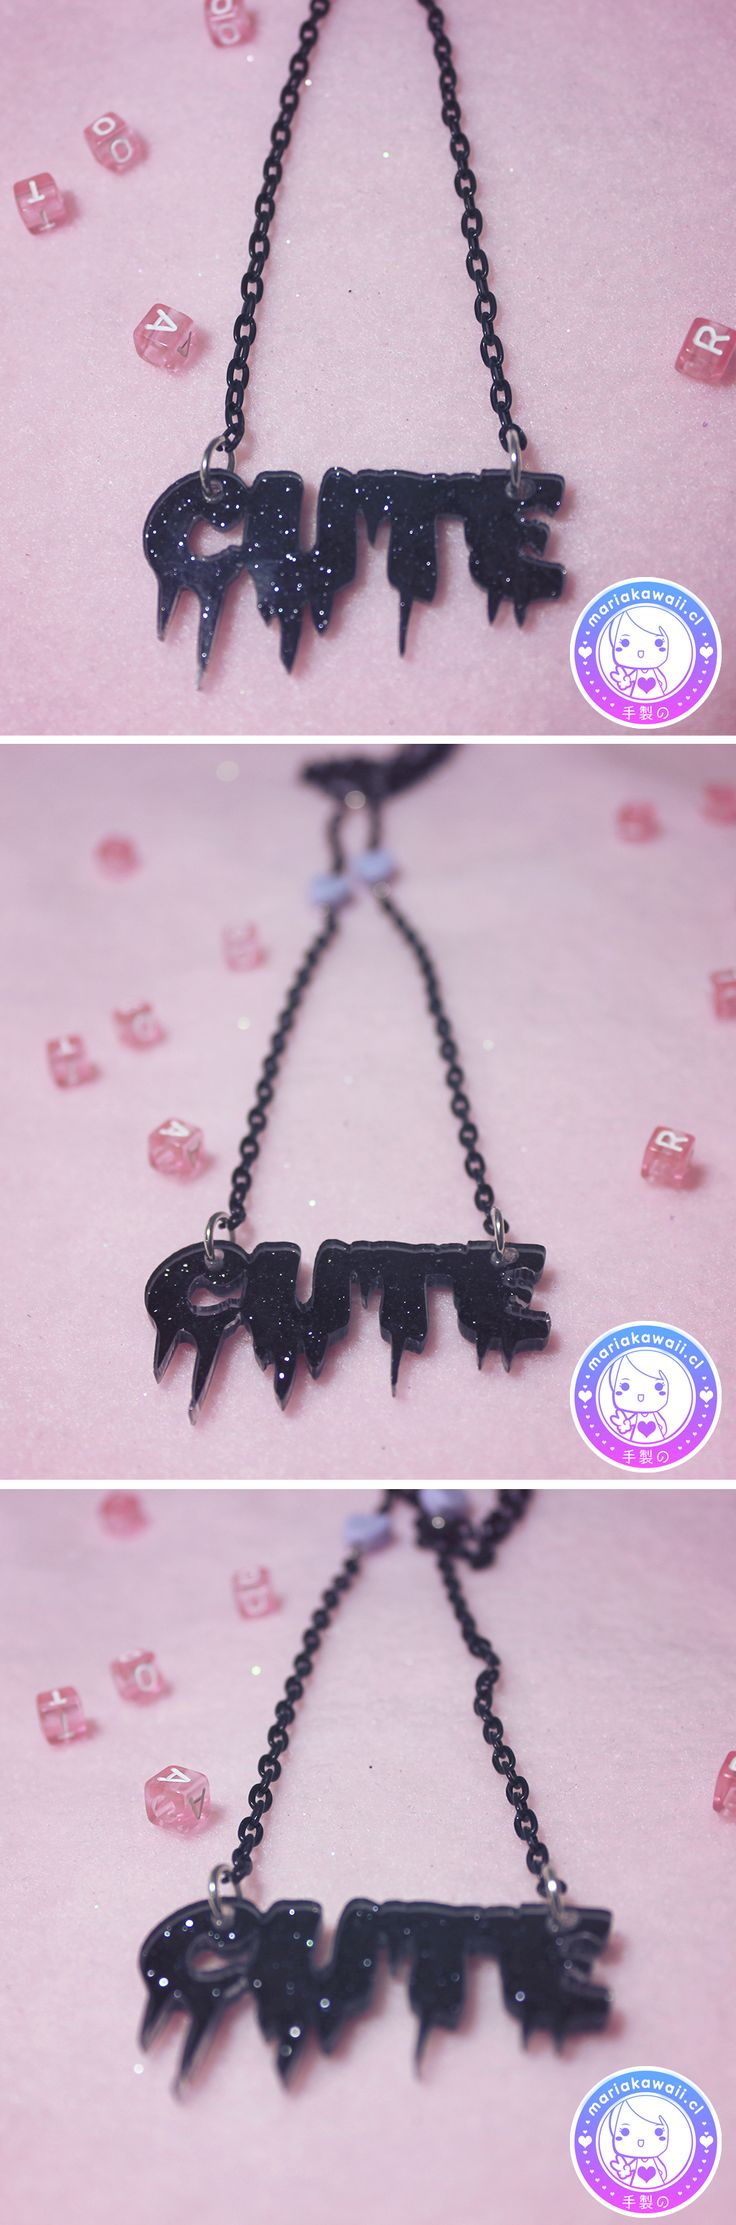 María Kawaii Store ♥ Cute Black Hearts necklace